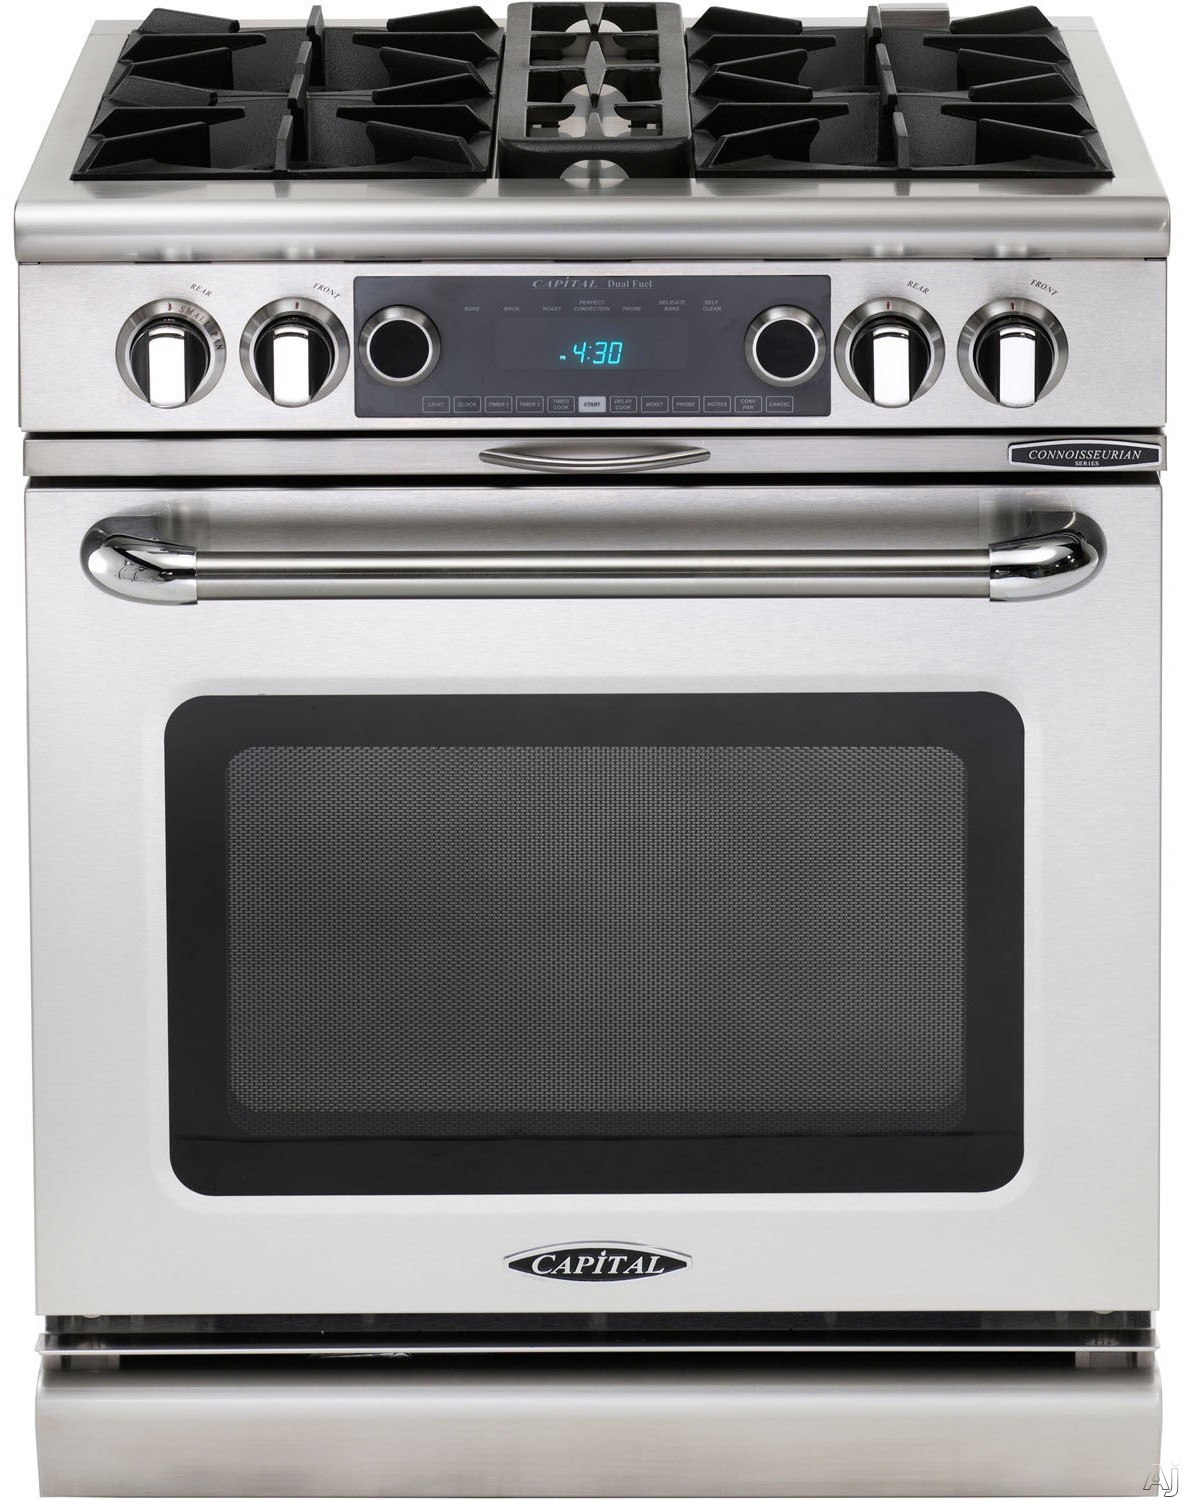 """Capital Connoisseurian Series COB304 30 Inch Pro-Style Dual Fuel Range with 4 Open Burners, Removable Spill Pans, Dual Air-Flow Convection, Moto-Rotisâ""""¢ Rotisserie, Moist Bake Option, Flex-Rollâ""""¢ Oven Racks and 5.4 cu. ft. Oven"""